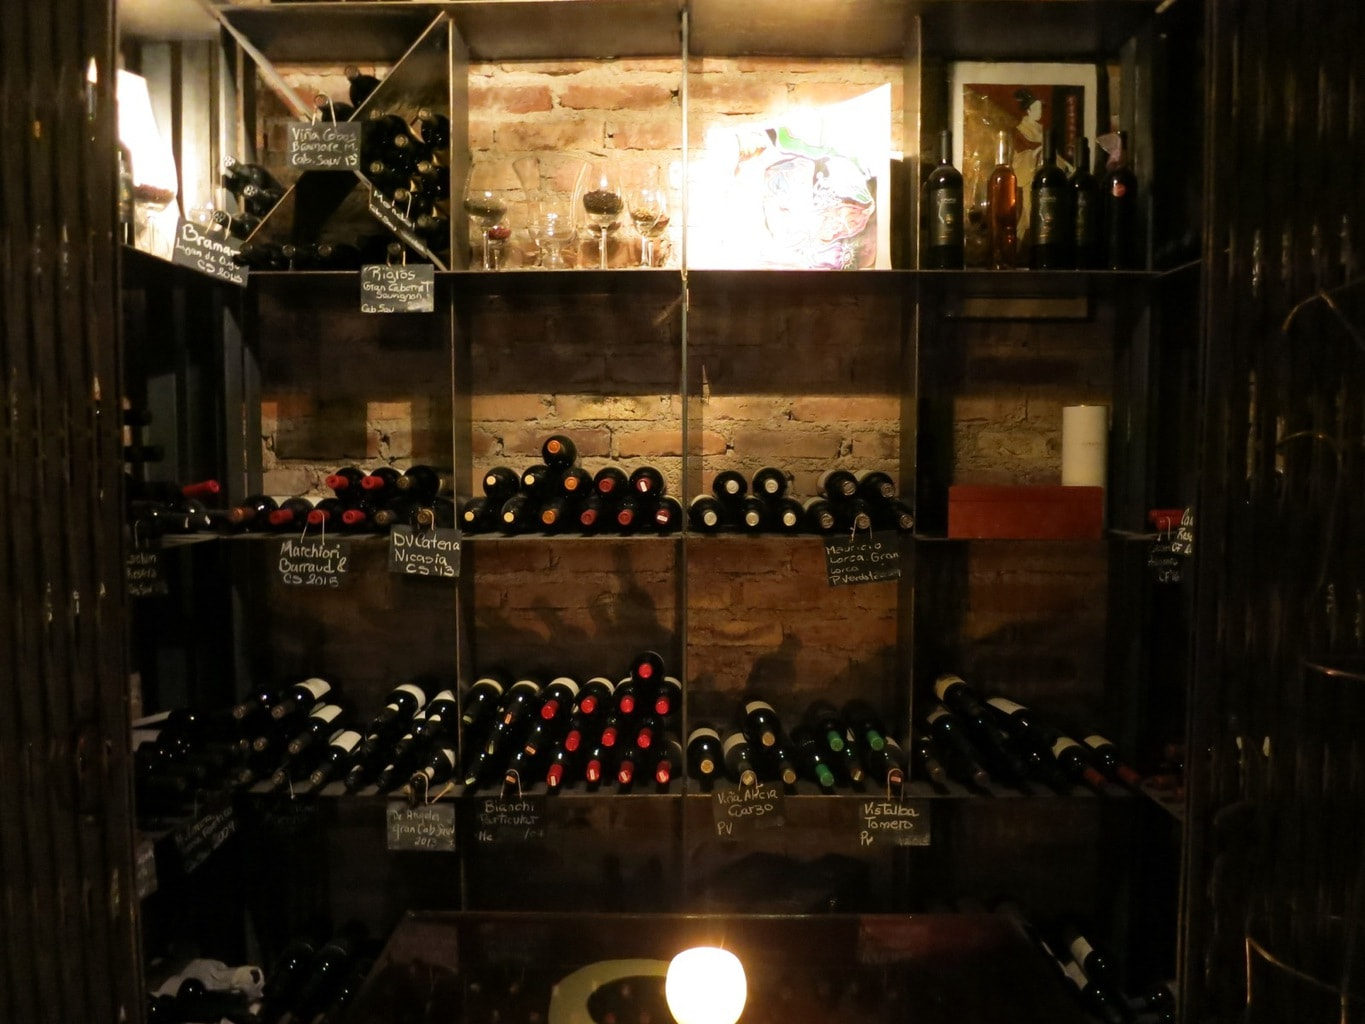 Stocked wine bottles Cavas Wine Lodge Mendoza Argentina